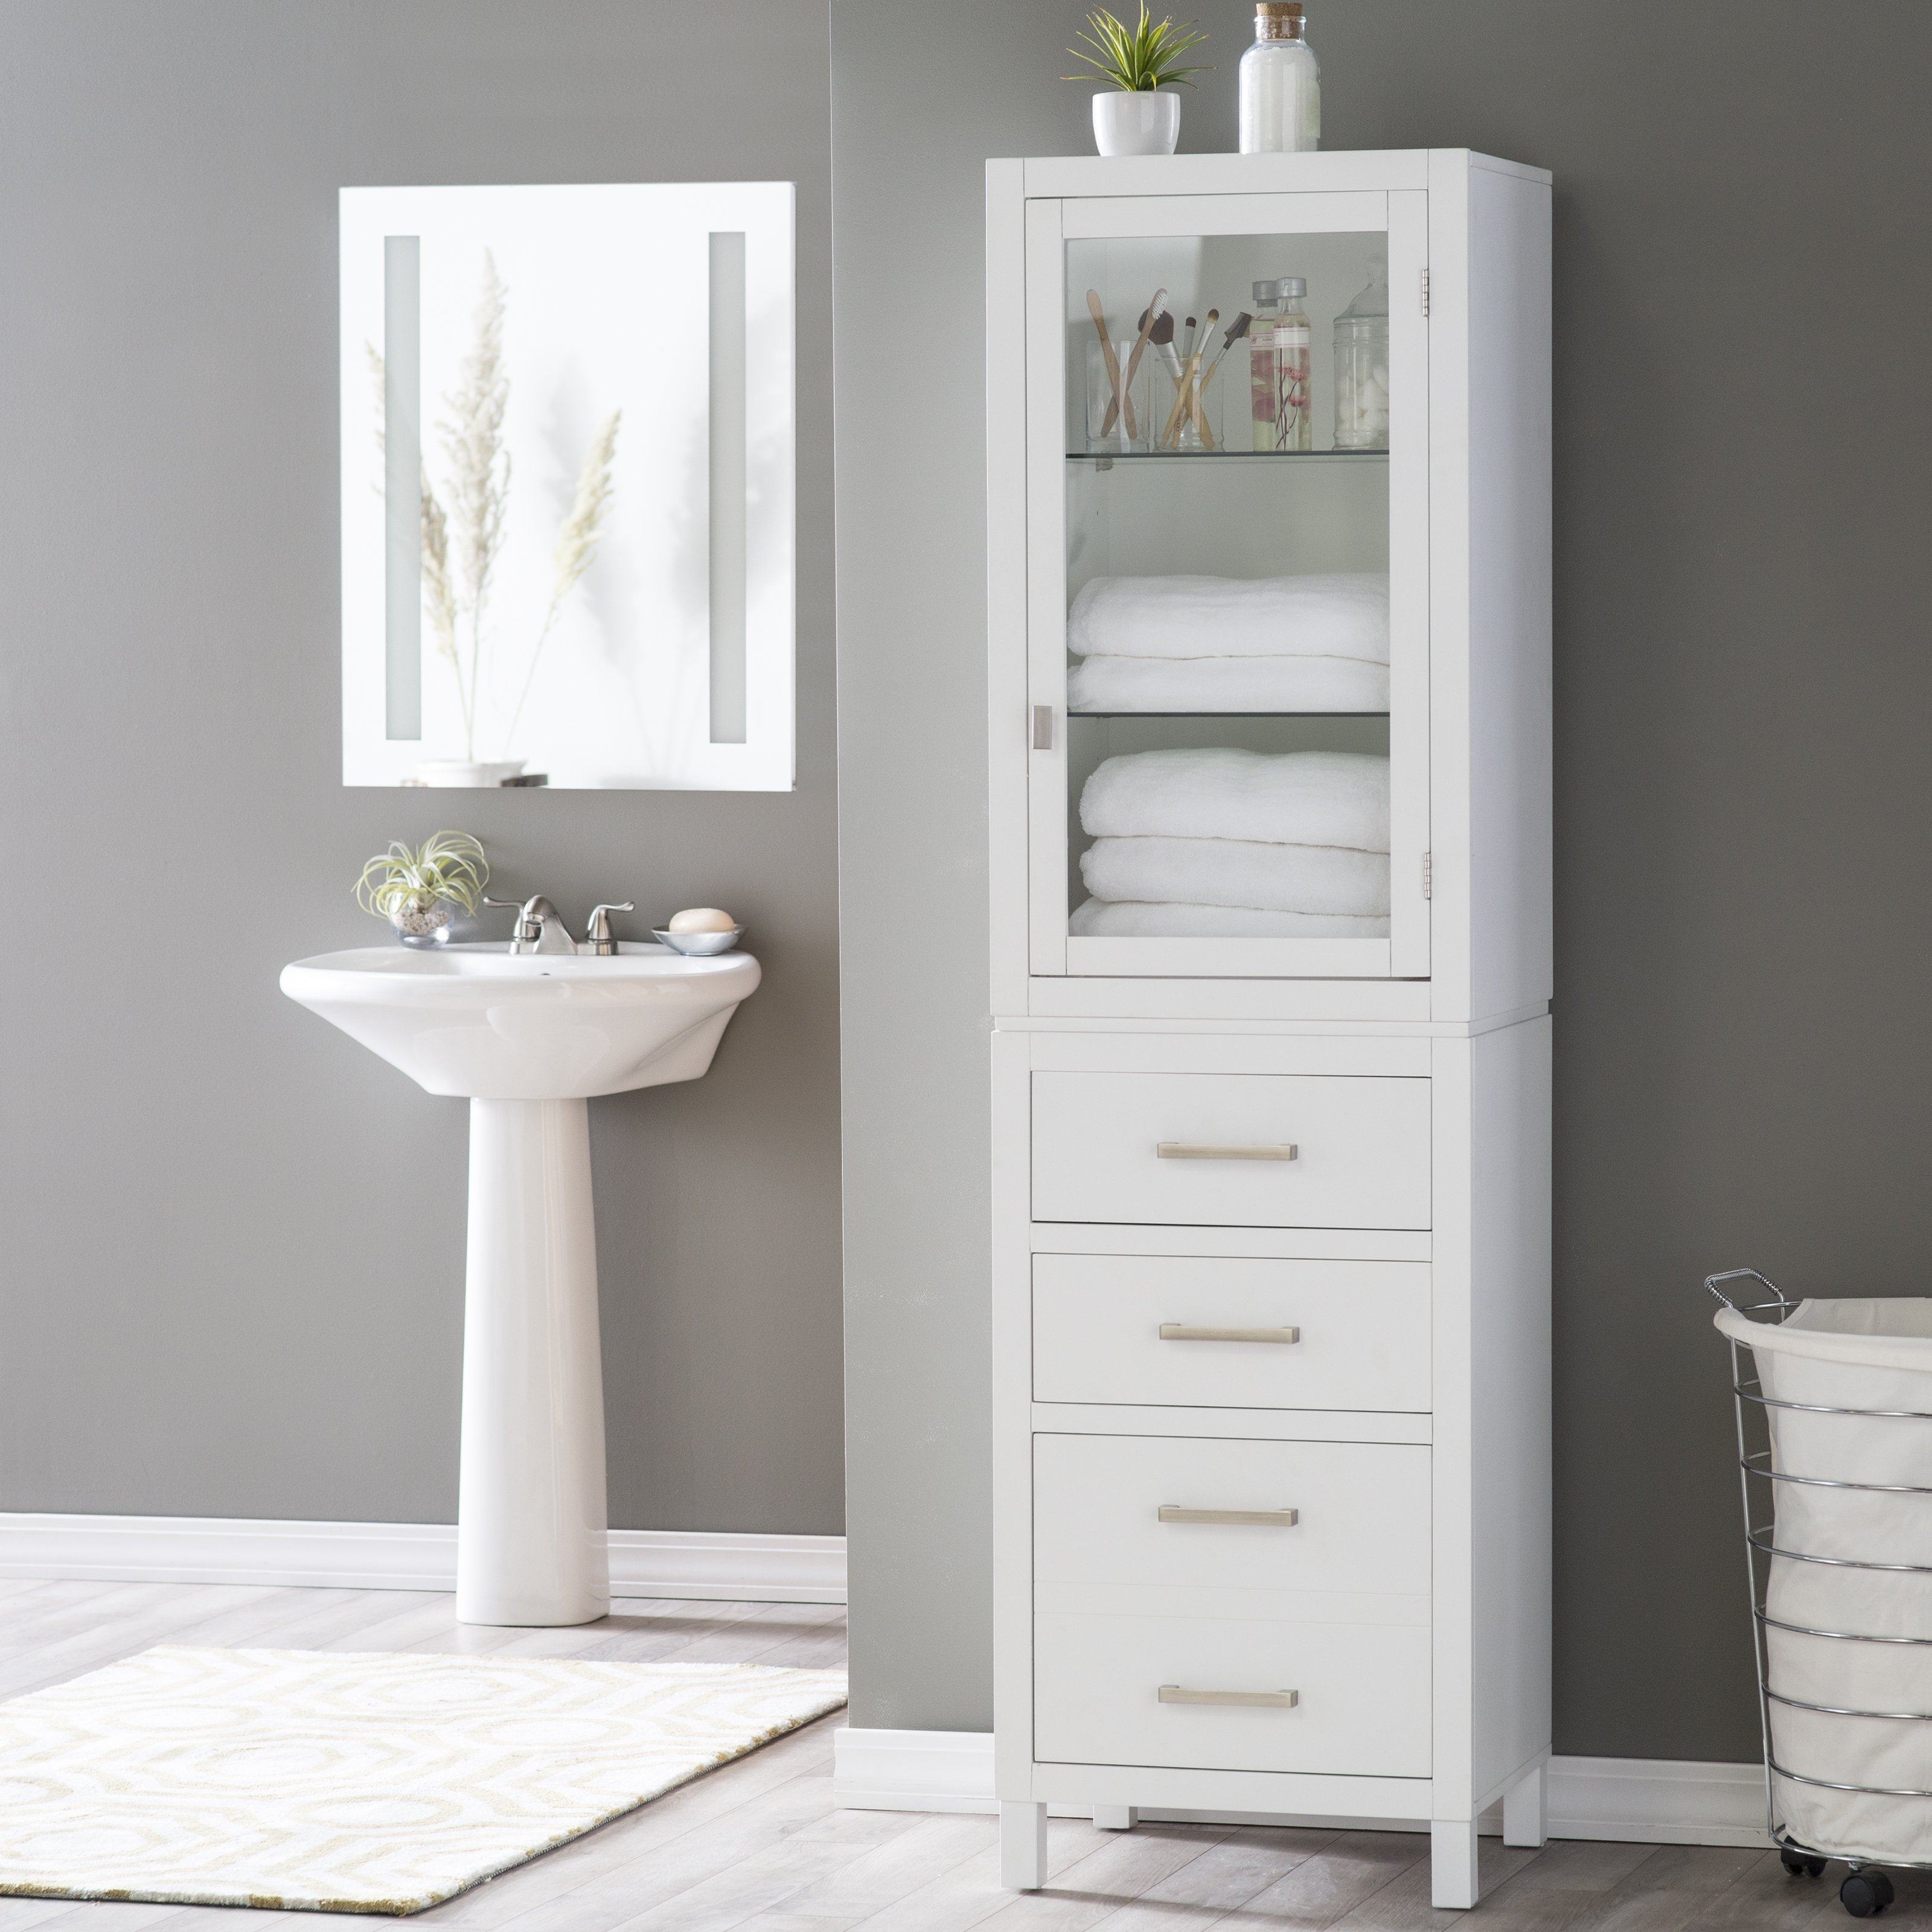 Thin Bathroom Cabinet Ikea